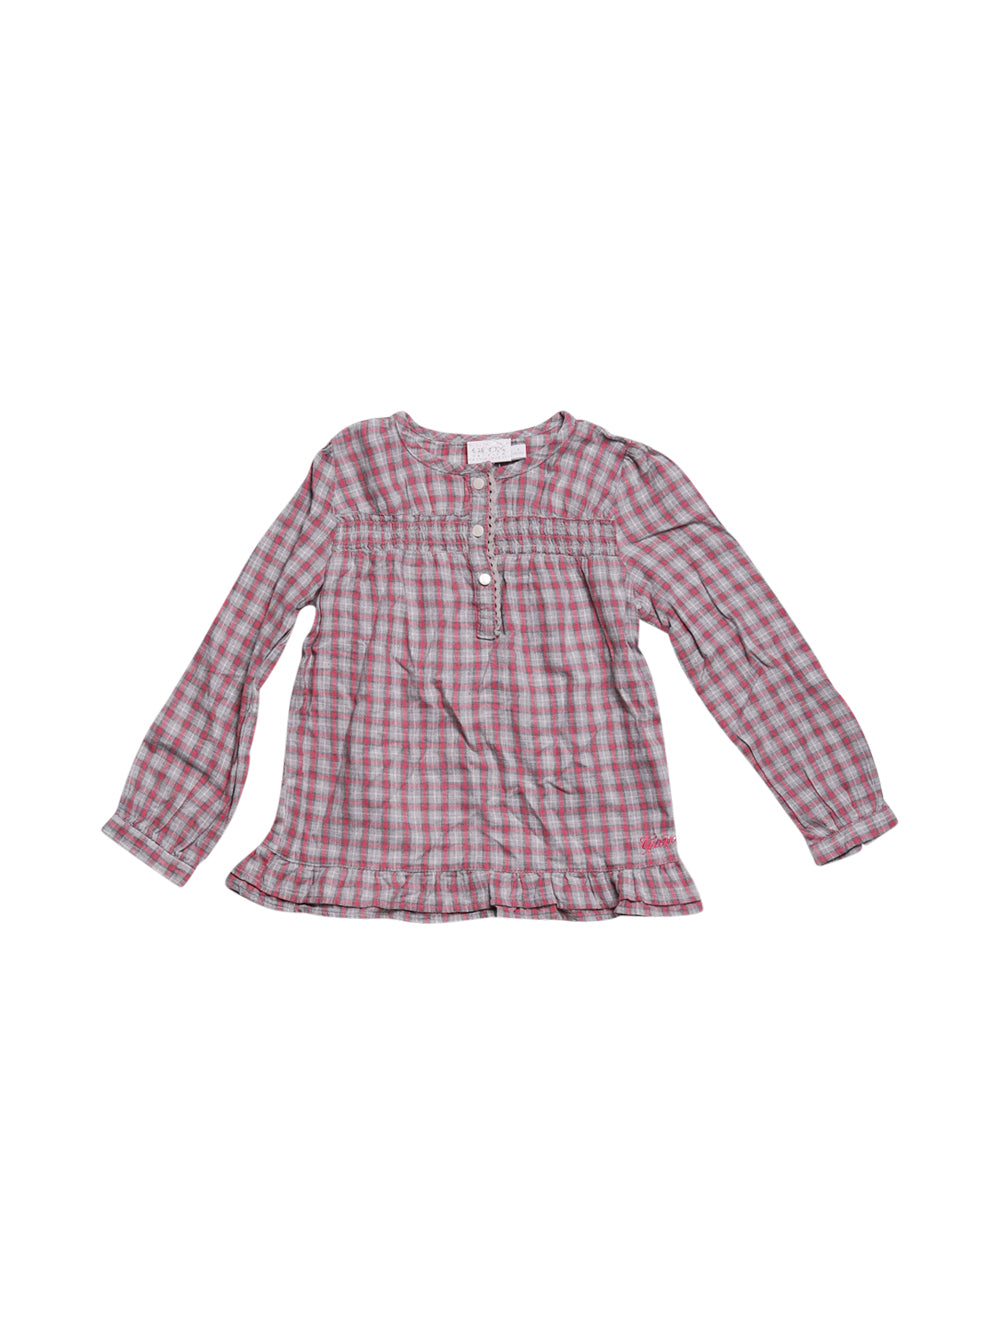 Front photo of Preloved Geox Grey Girl's shirt - size 3-4 yrs